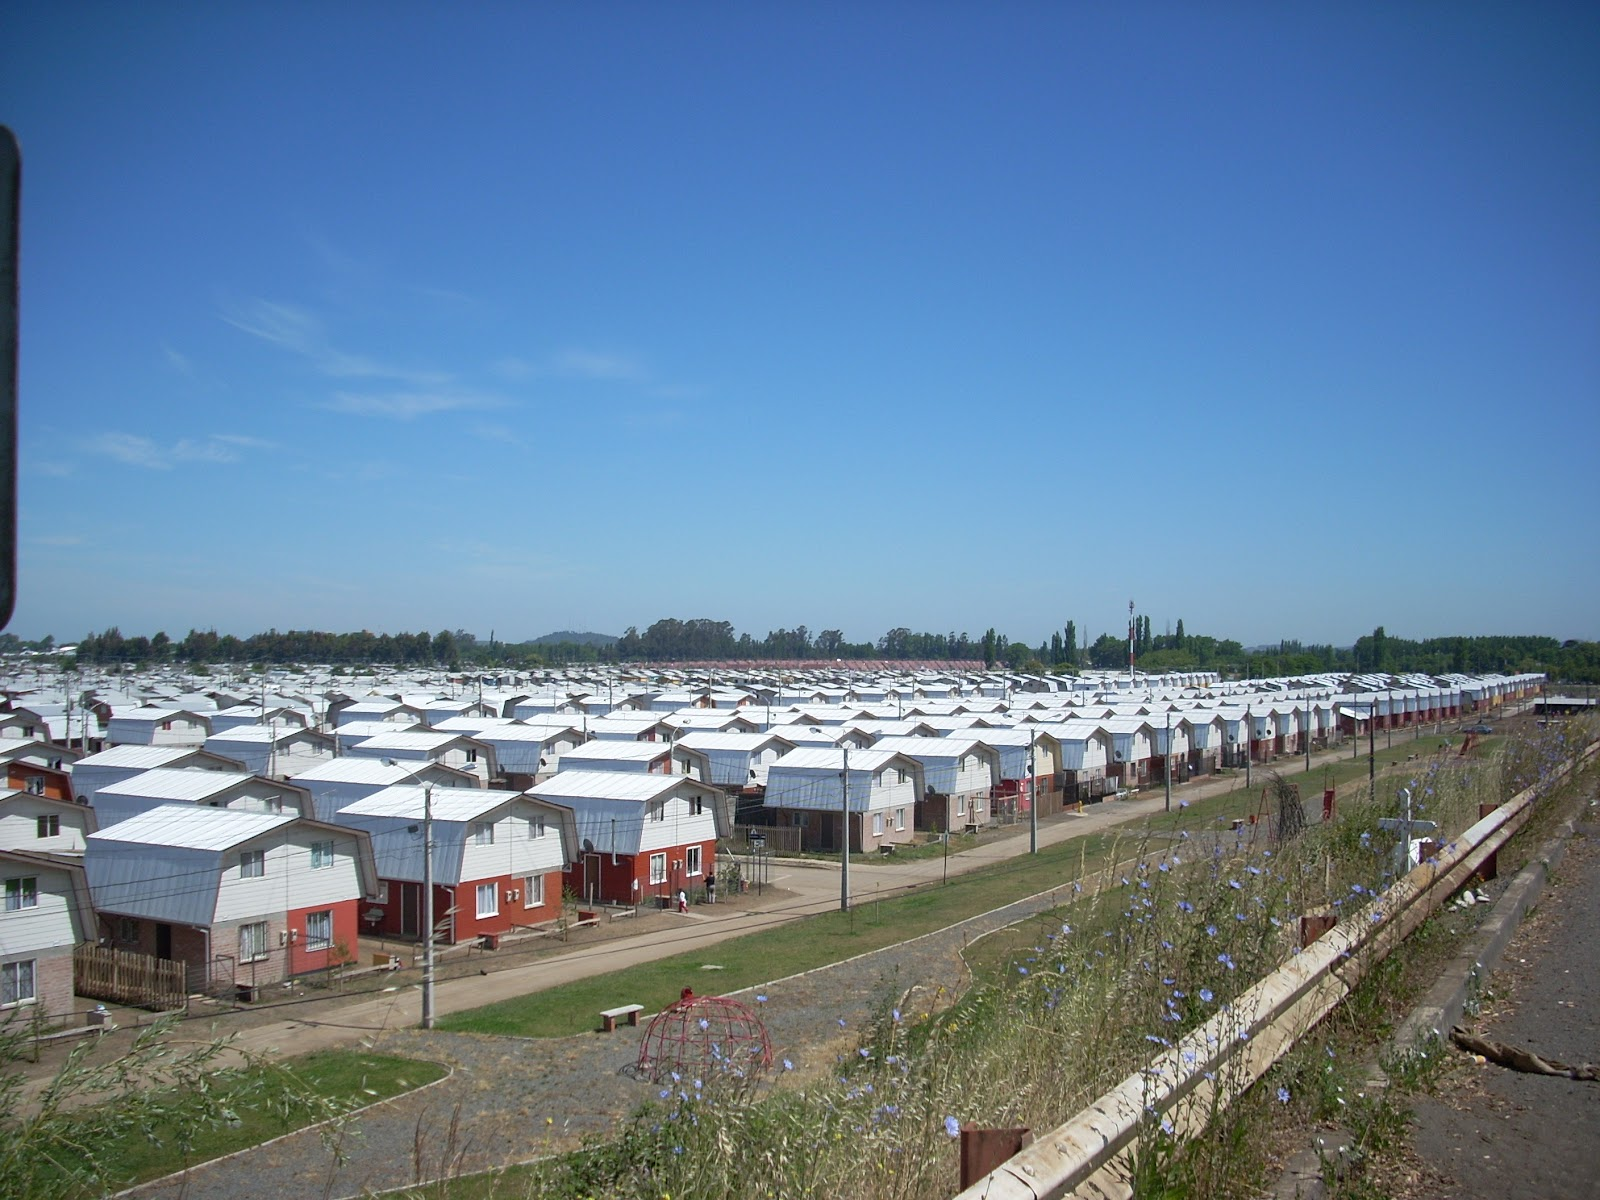 I'm not sure what I expected of Chilean housing, but I don't think it was rows and rows of identical duplexes.